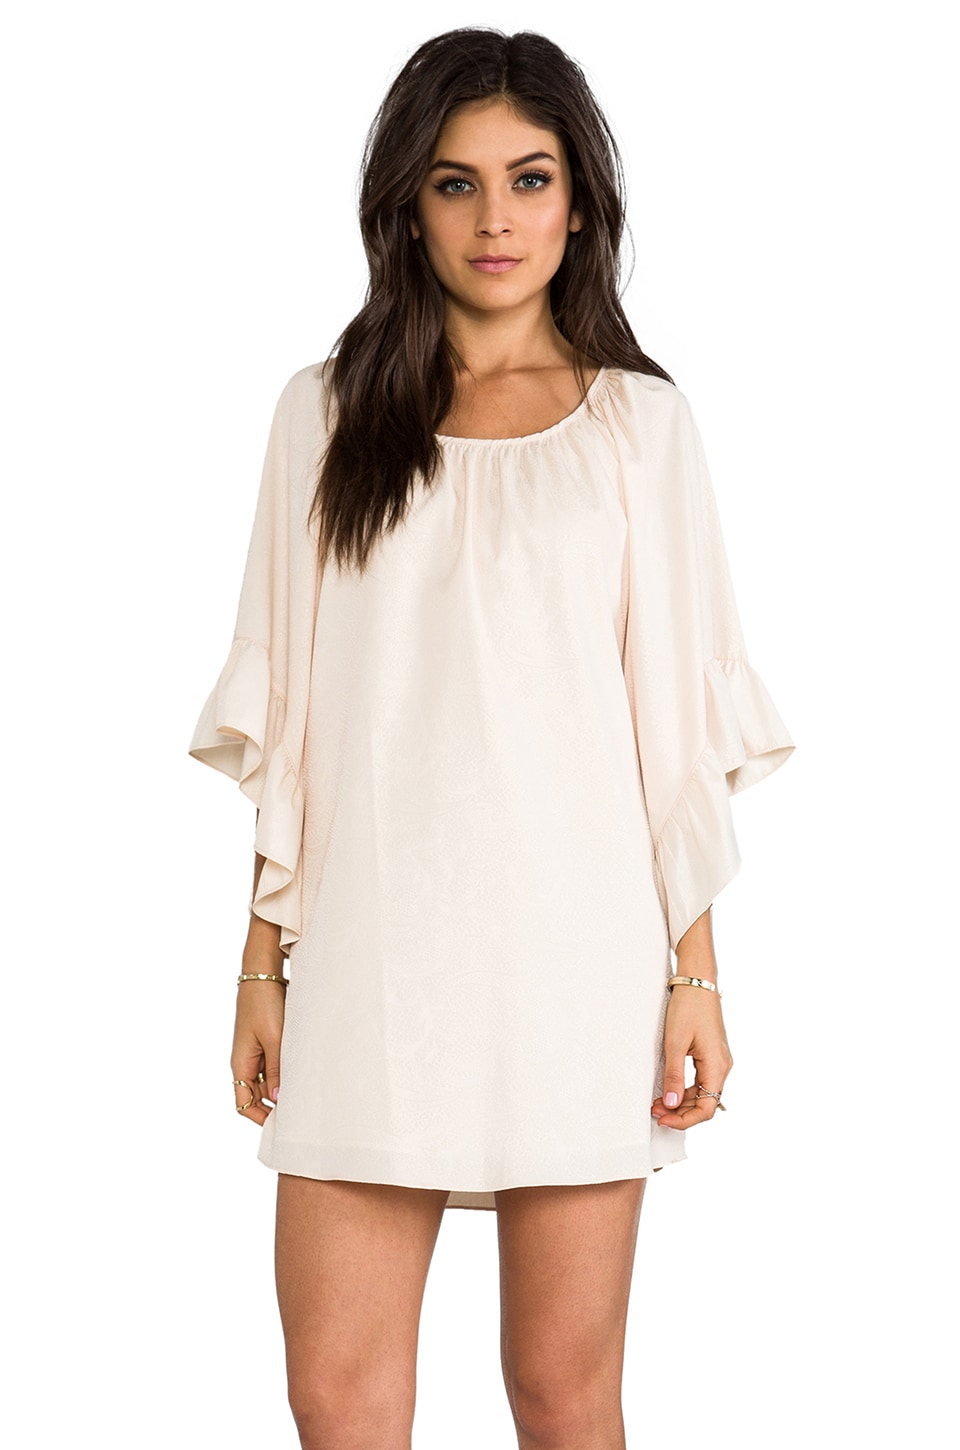 VAVA by Joy Han Holly Smock Dress in Ivory